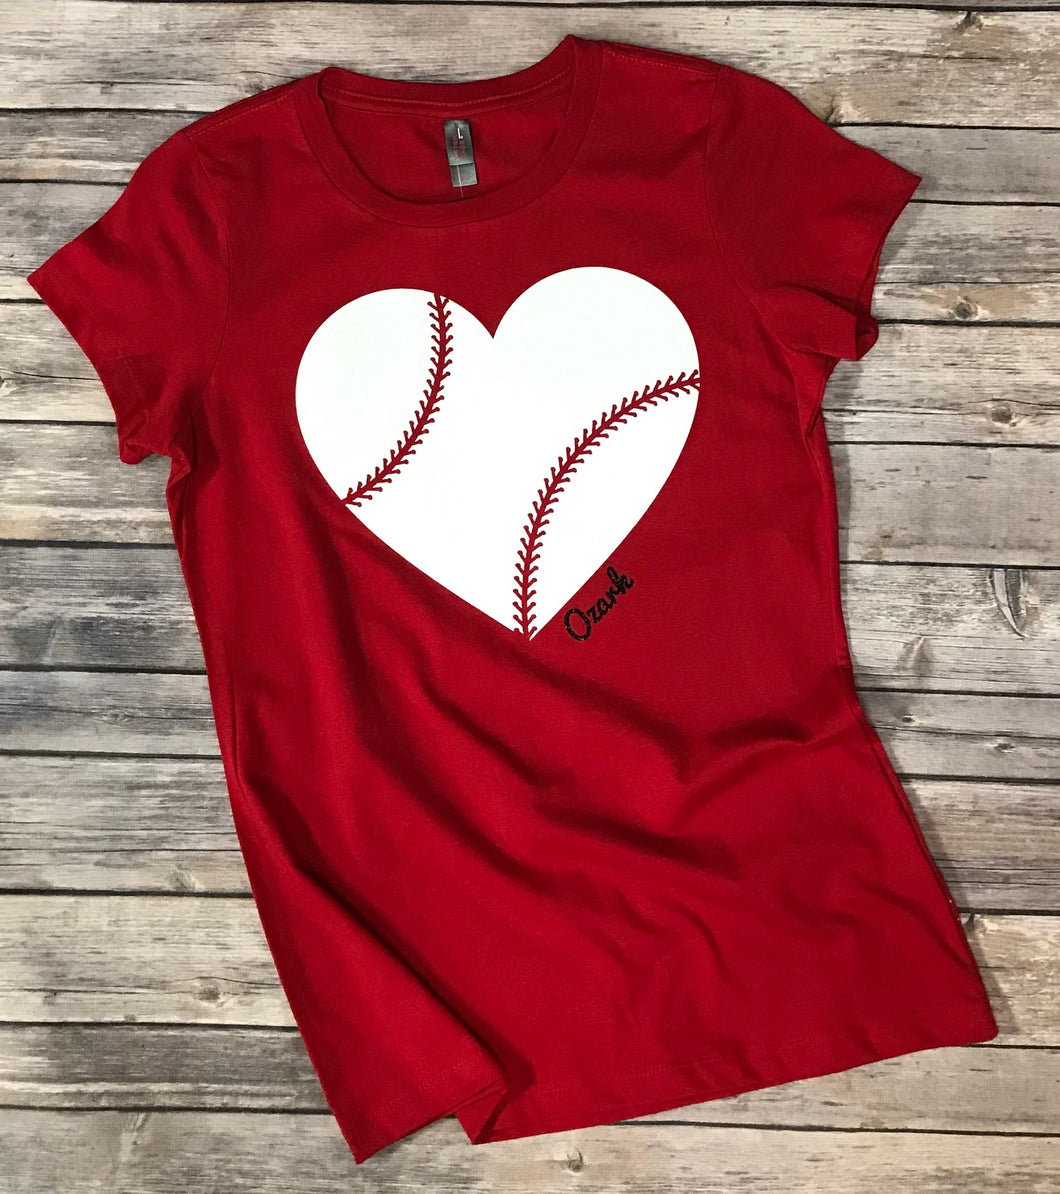 Ozark Baseball Sparkle T-Shirt